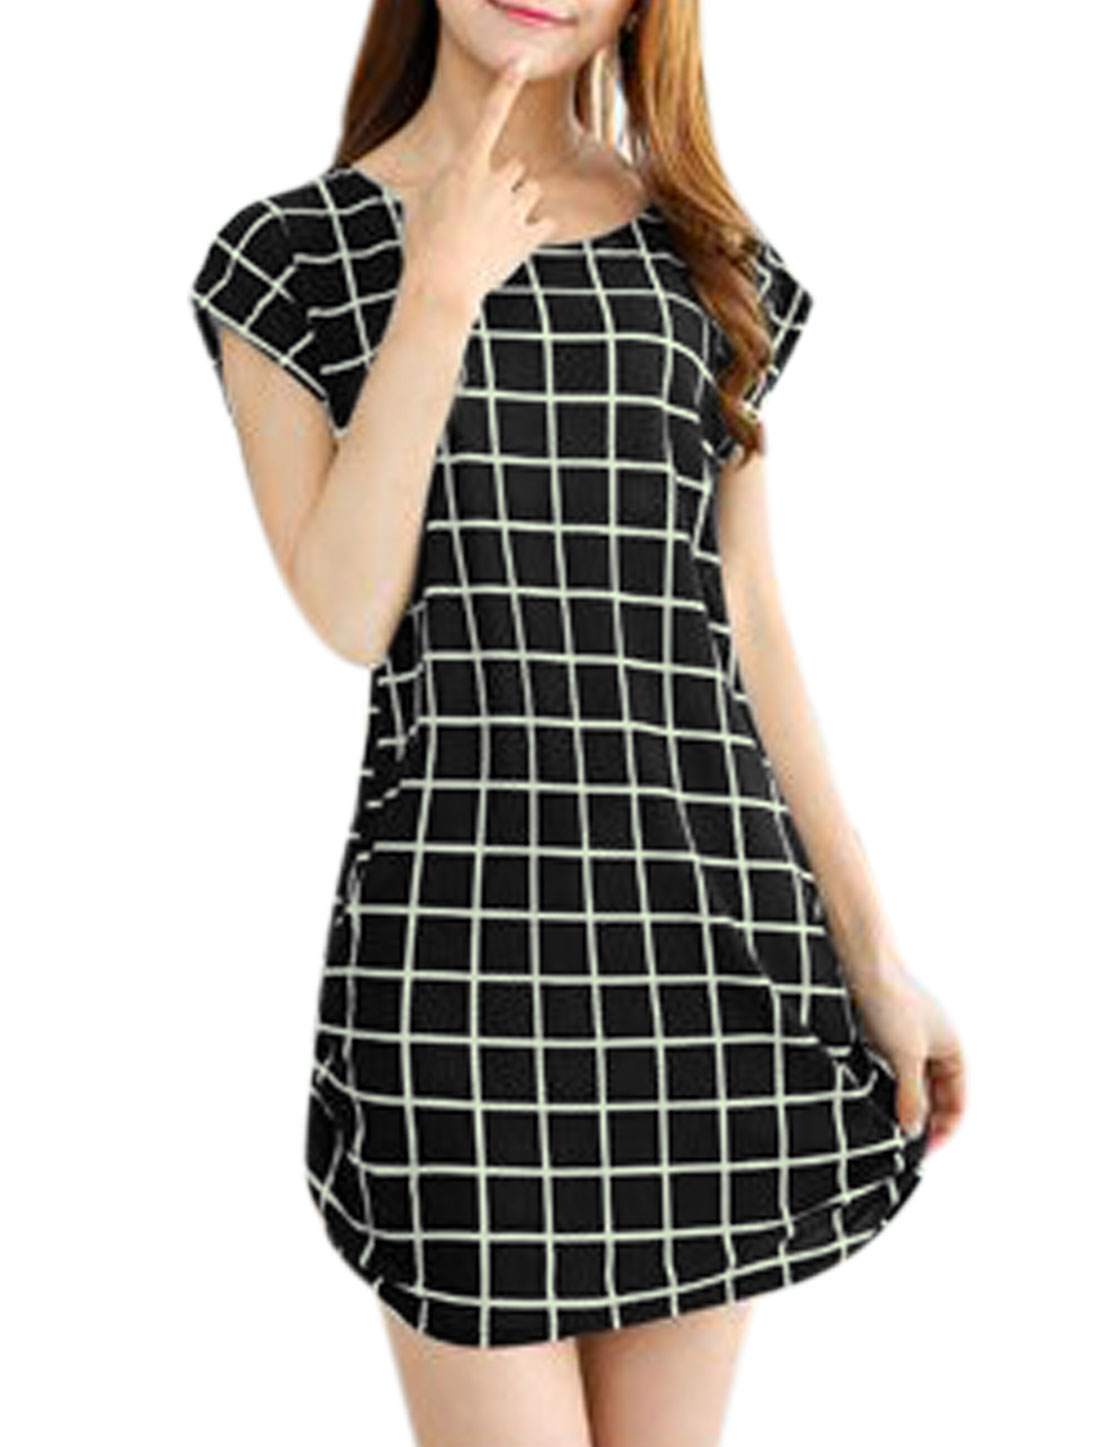 Women Short Sleeve Round Neck Check Print Sides Shirred Dress Black S